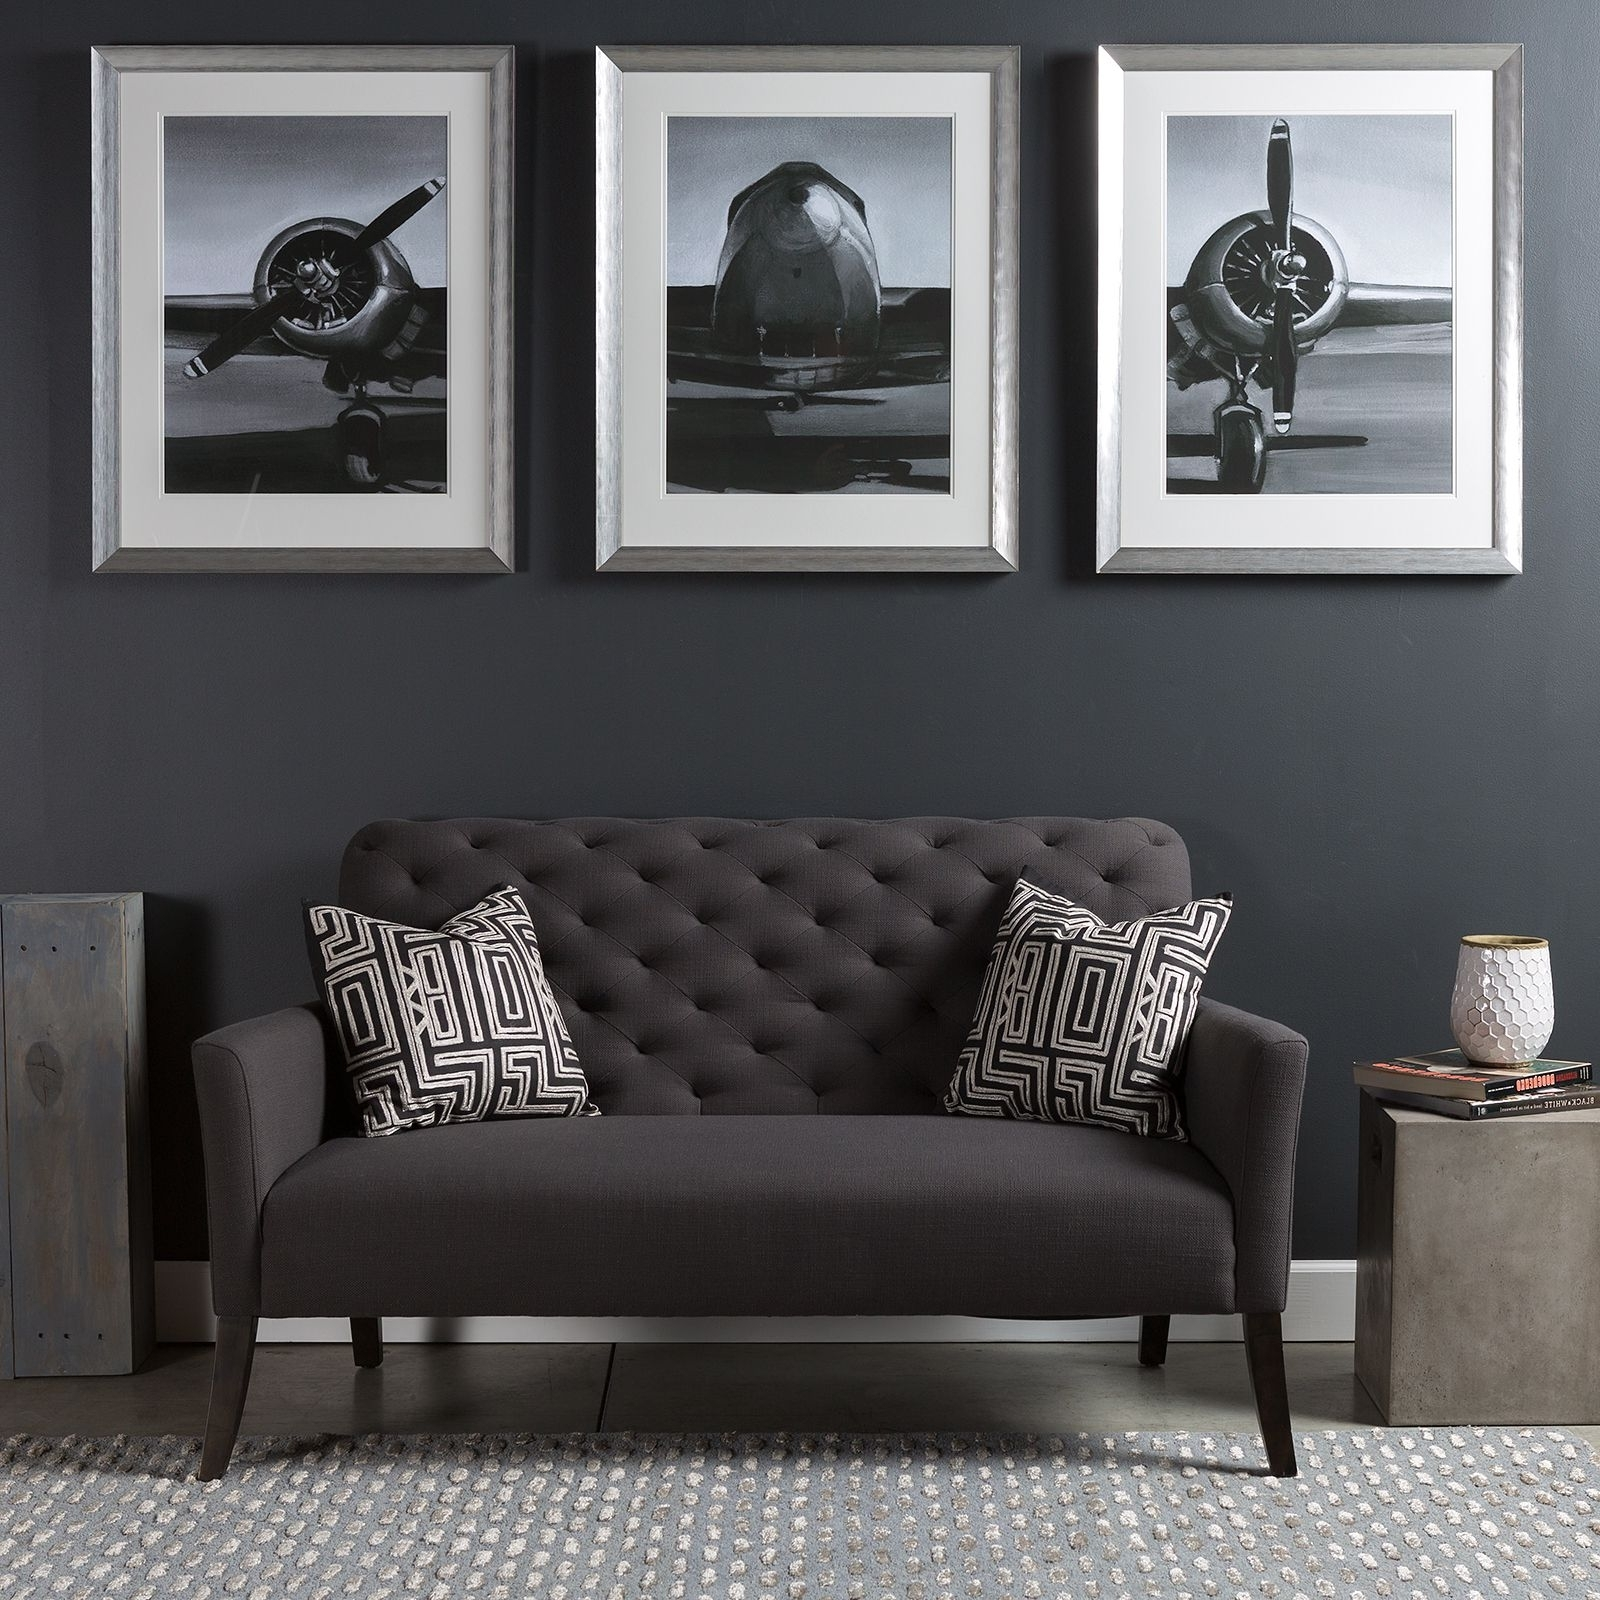 Triptych Wall Art Piece With A Modern Industrial Flare; A Series Of Pertaining To Famous Airplane Wall Art (View 4 of 15)